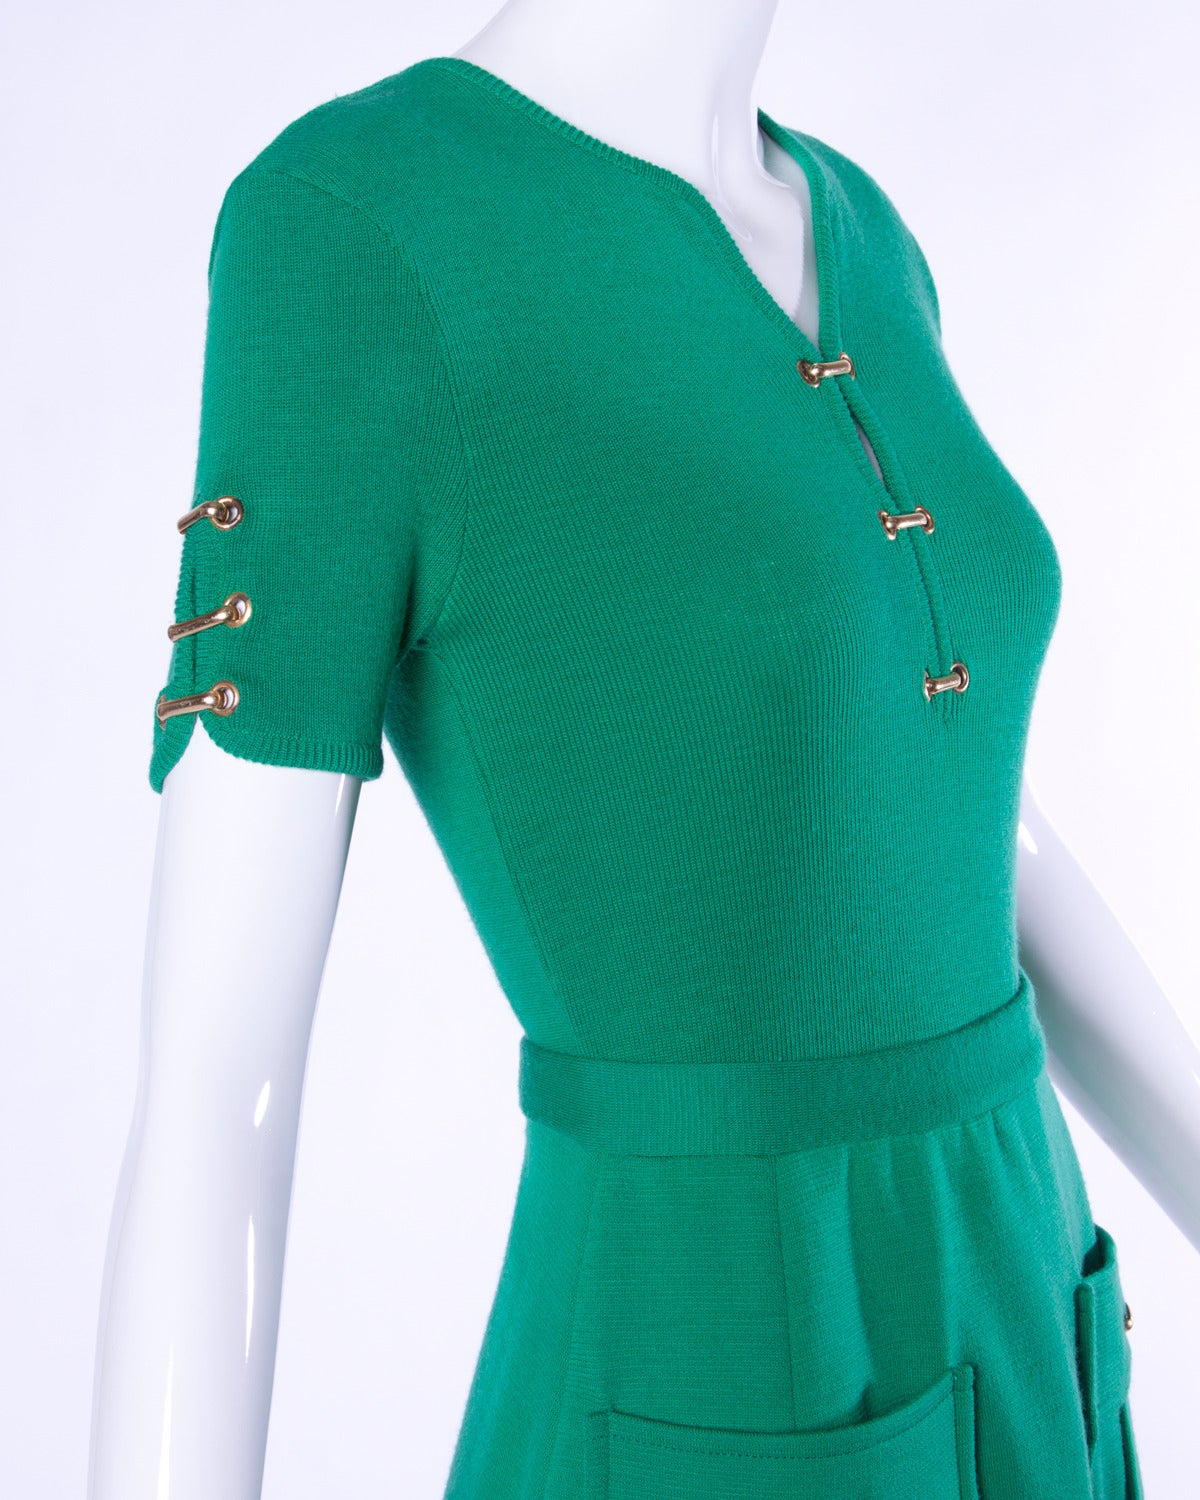 Vintage 1960s 60s Italian Wool Kelly Green Knit Skirt + Top 2-Piece Ensemble 4